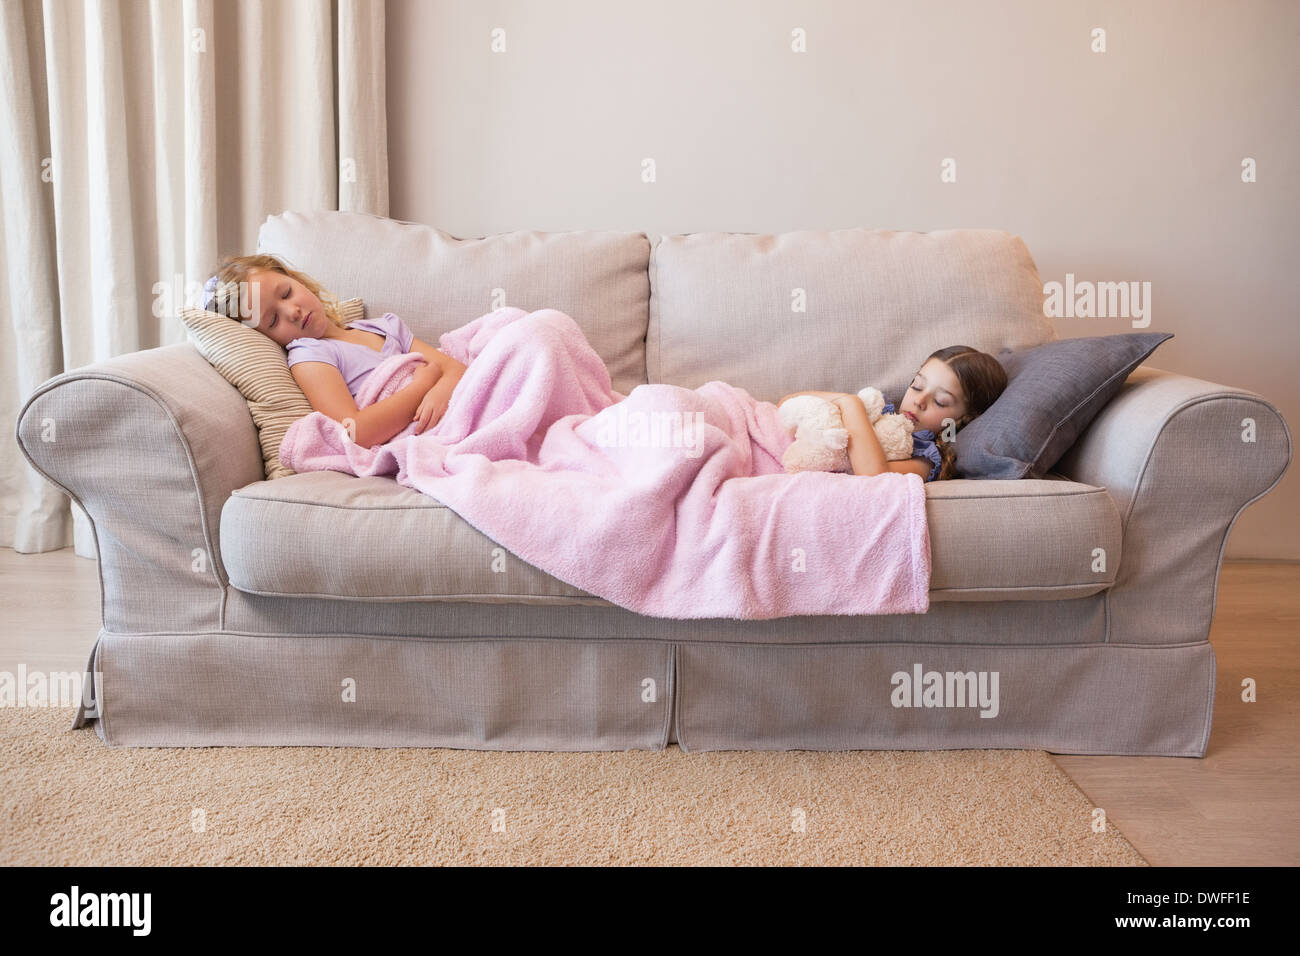 Magnificent Two Young Girls Sleeping On Couch Stock Photo 67338586 Alamy Machost Co Dining Chair Design Ideas Machostcouk